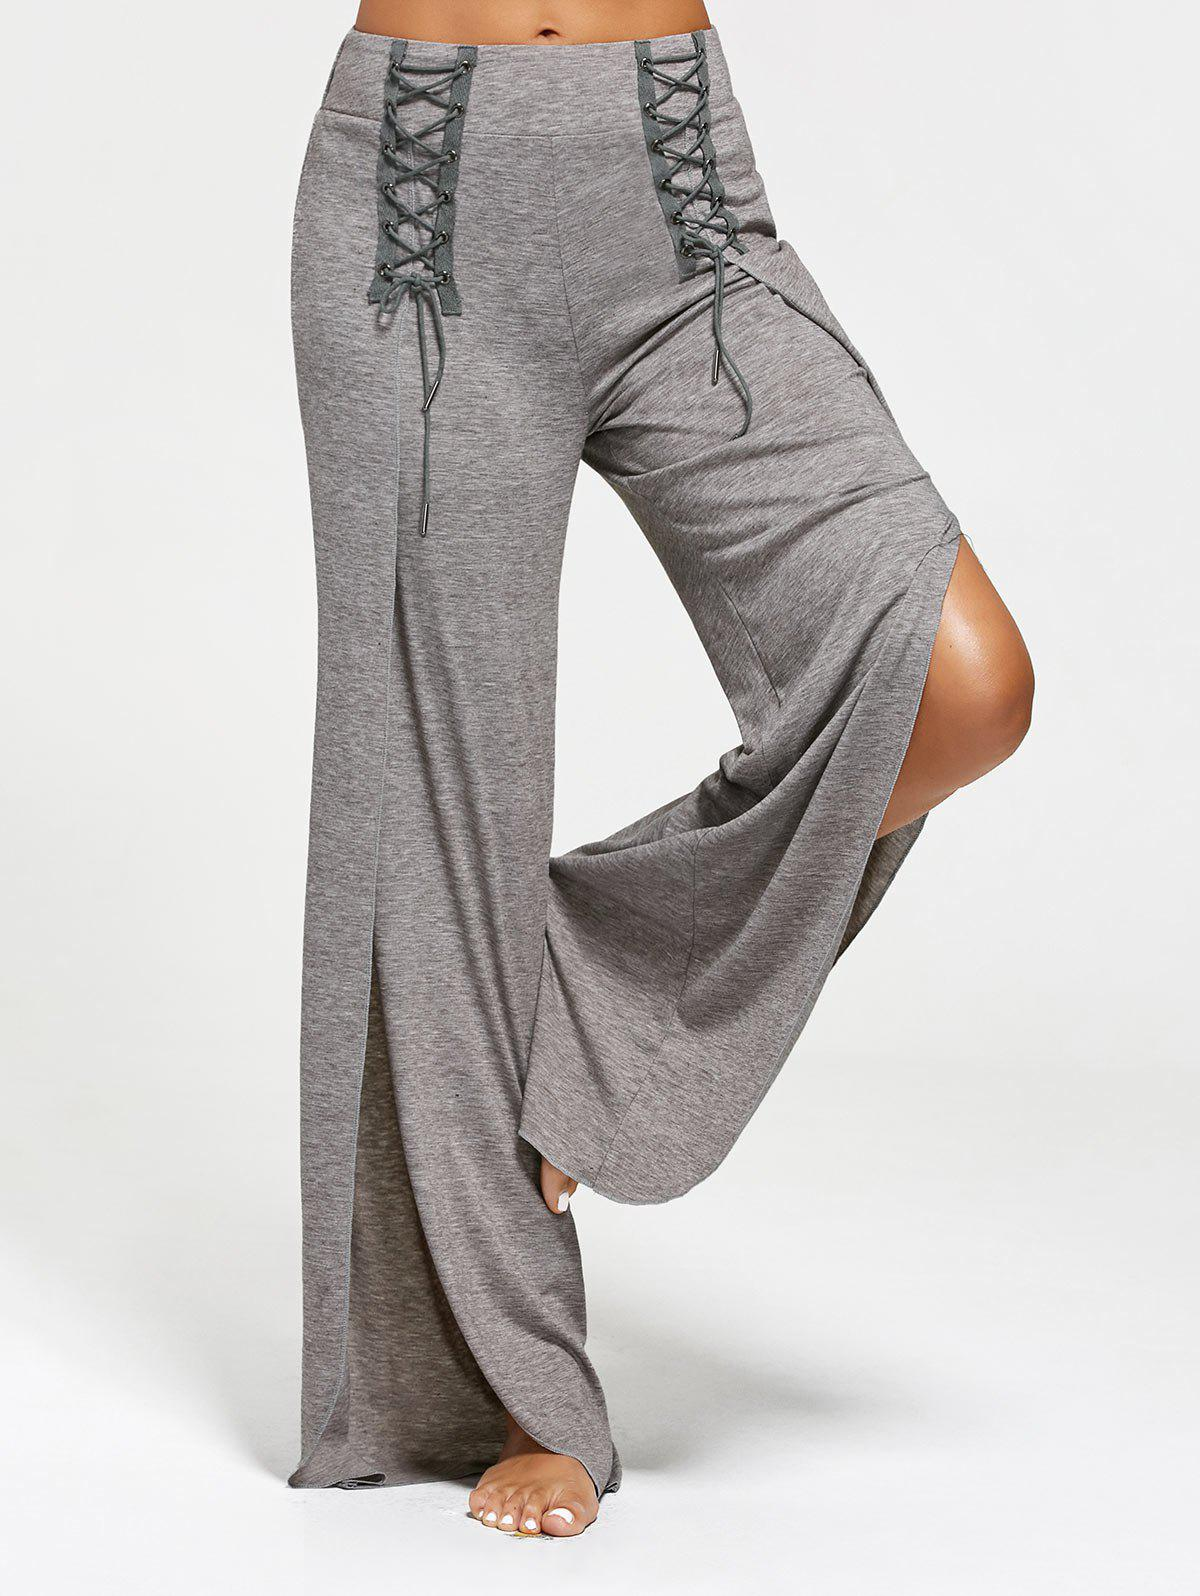 Lace Ups Embellished High Slit Palazzo PantsWOMEN<br><br>Size: 2XL; Color: GRAY; Style: Casual; Length: Normal; Material: Polyester,Spandex; Fit Type: Loose; Waist Type: High; Closure Type: Elastic Waist; Front Style: Flat; Pattern Type: Solid; Embellishment: Criss-Cross,Slit; Pant Style: Wide Leg Pants; Elasticity: Elastic; With Belt: No; Weight: 0.3700kg; Package Contents: 1 x Pants;